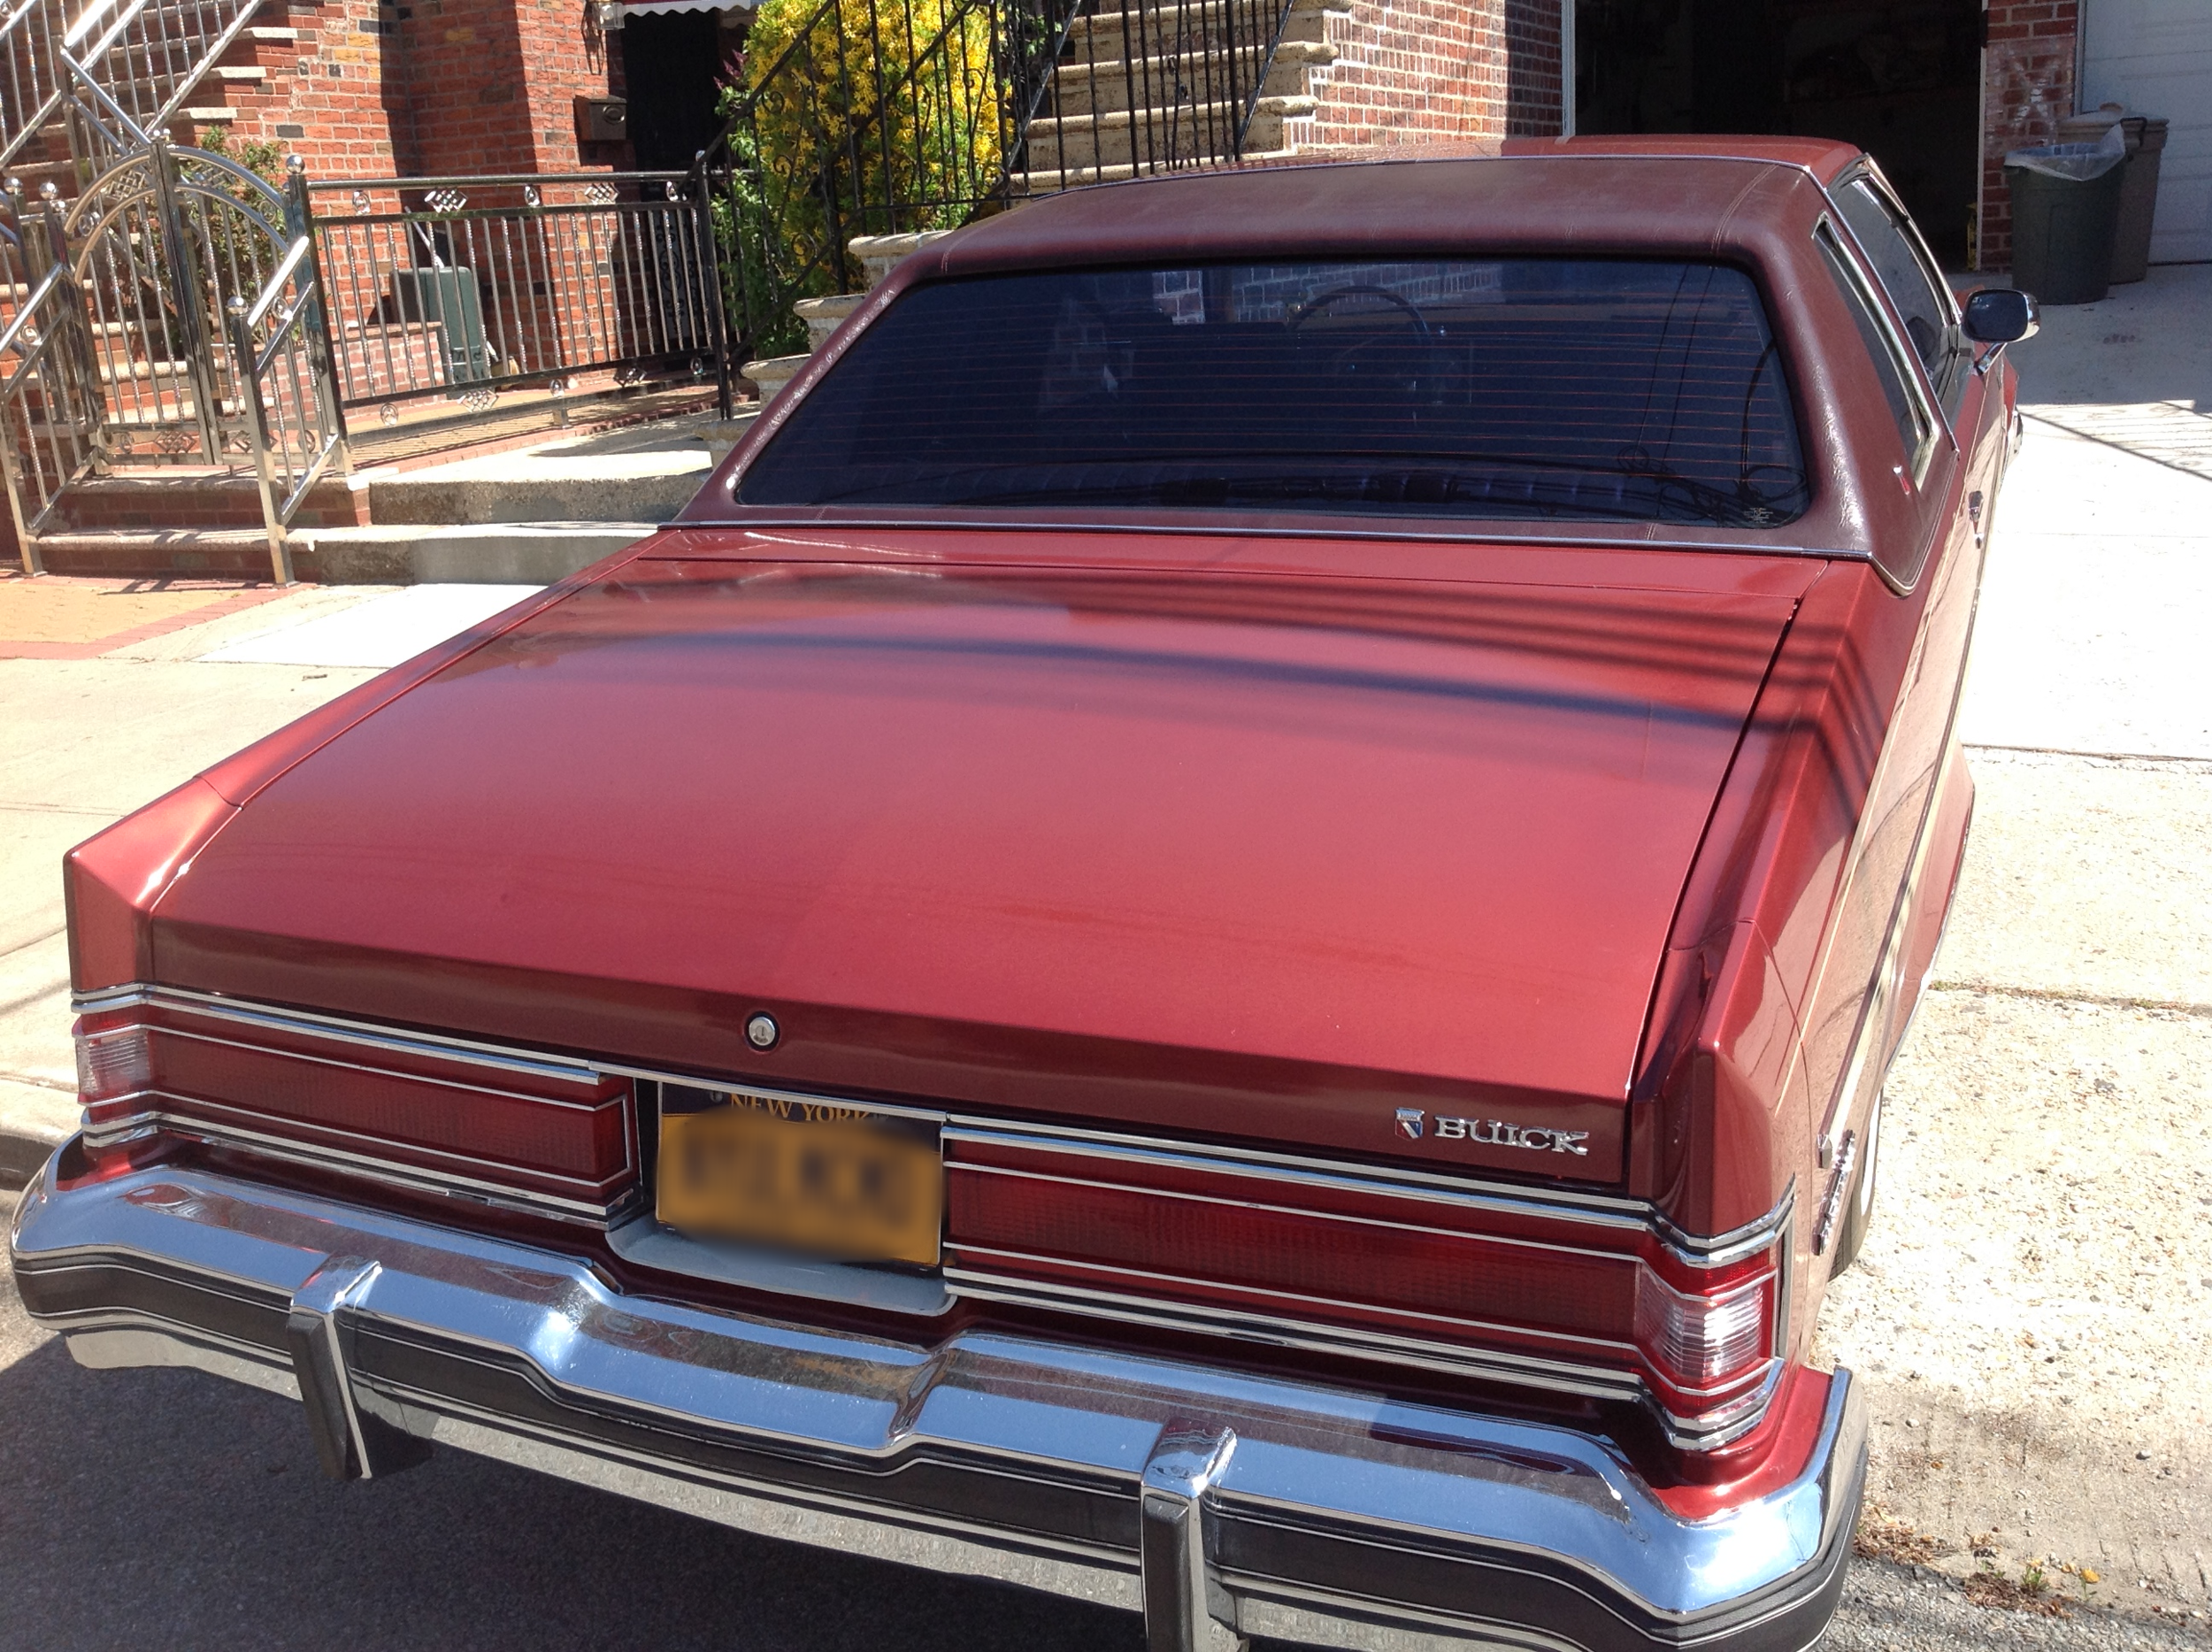 Michael Bloom: 1978 Electra 225 2dr Coupe